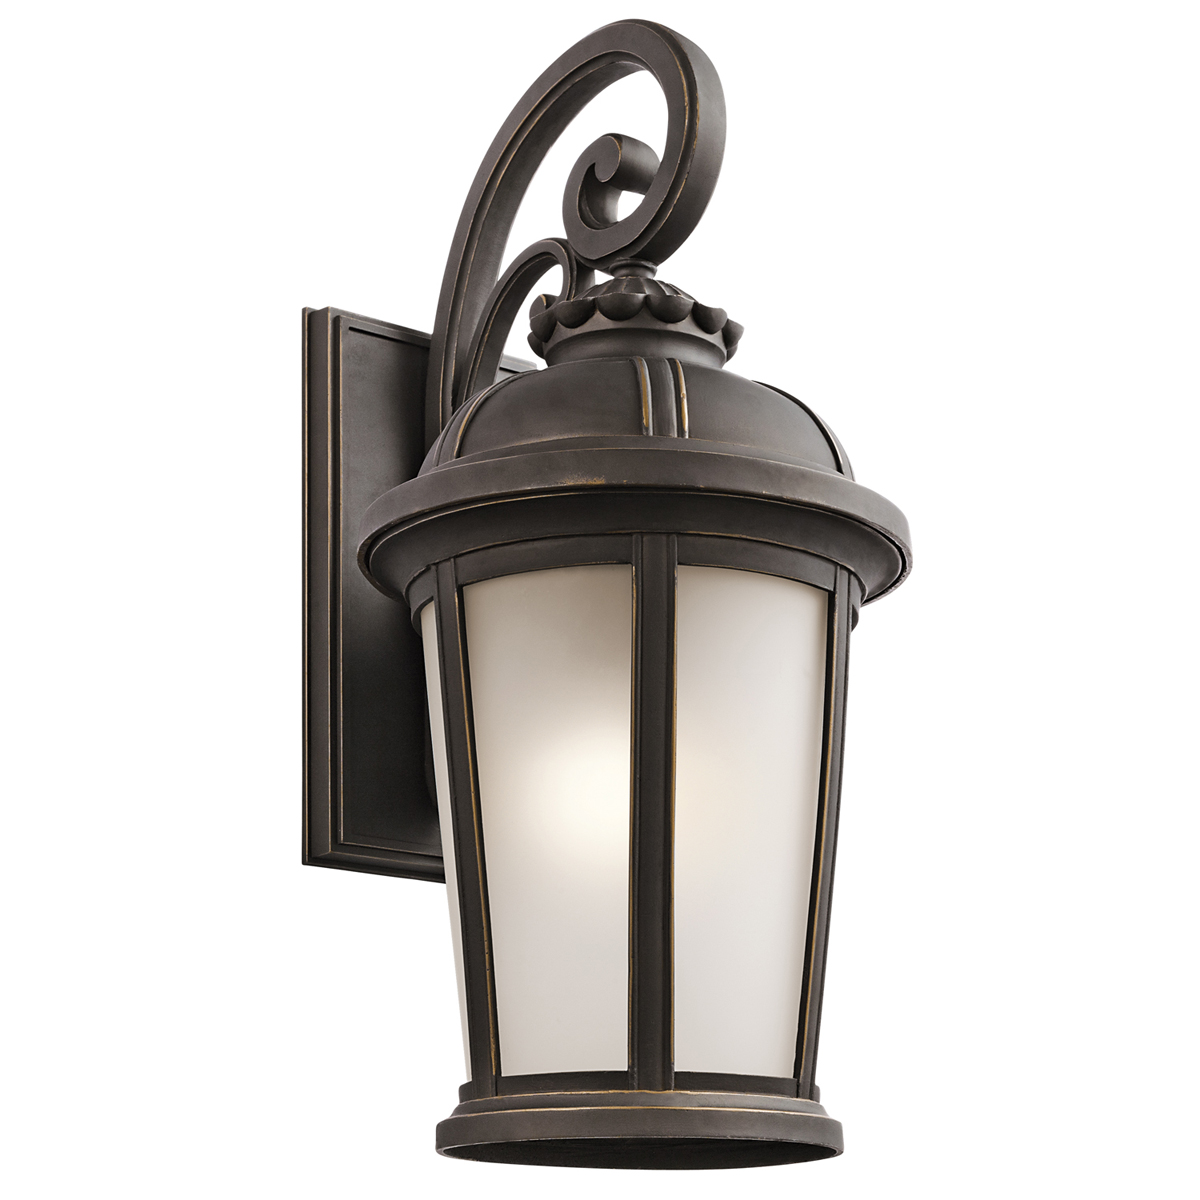 Large Bulb Wall Lights : Kichler Lighting (49414RZ) Ralston 1-Light X-Large Outdoor Wall Sconce in Rubbed Bronze